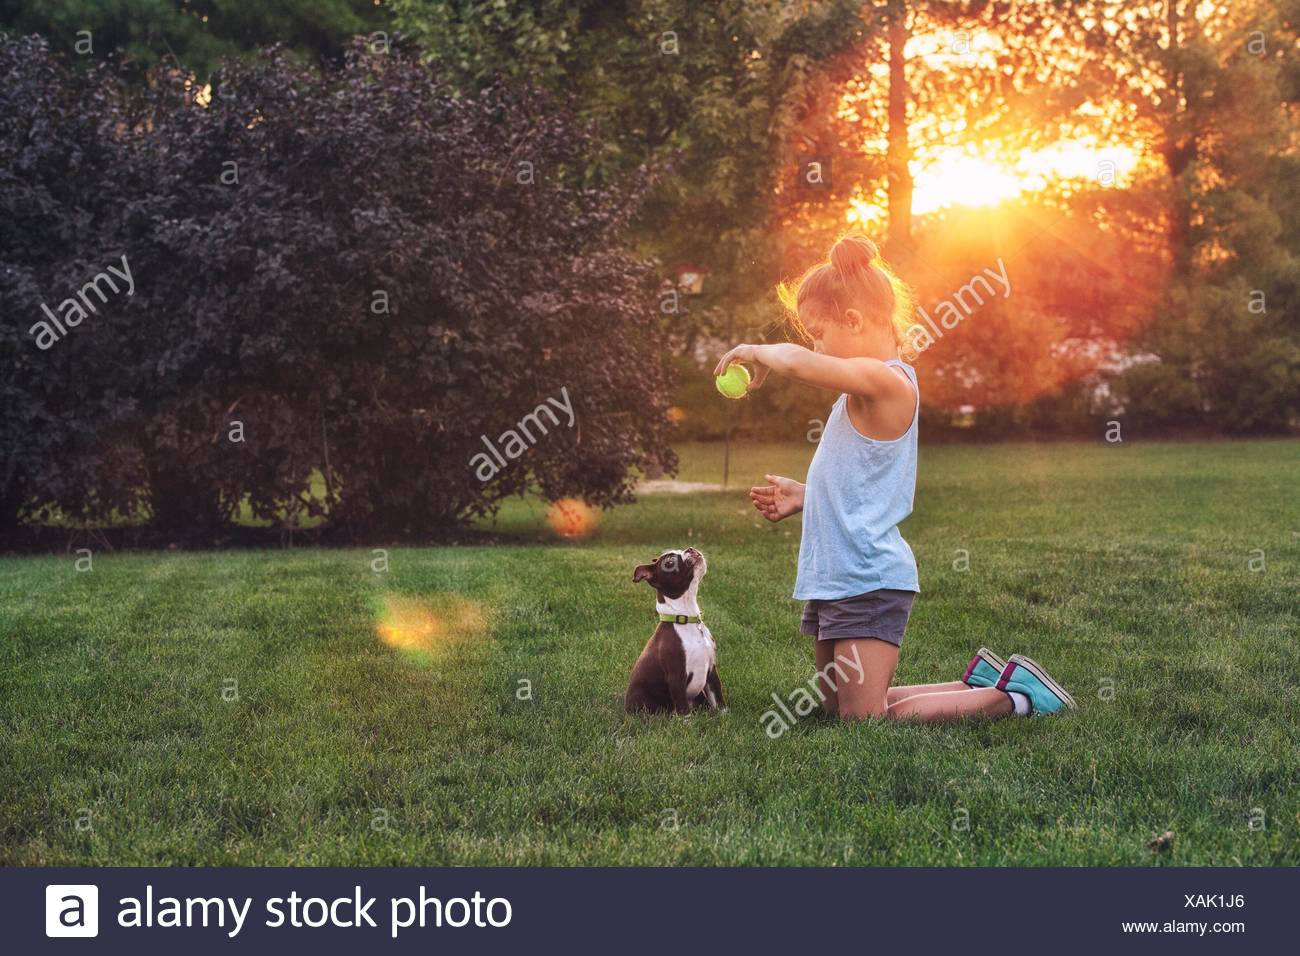 Side view of girl kneeling on grass using tennis ball to teach Boston terrier puppy - Stock Image